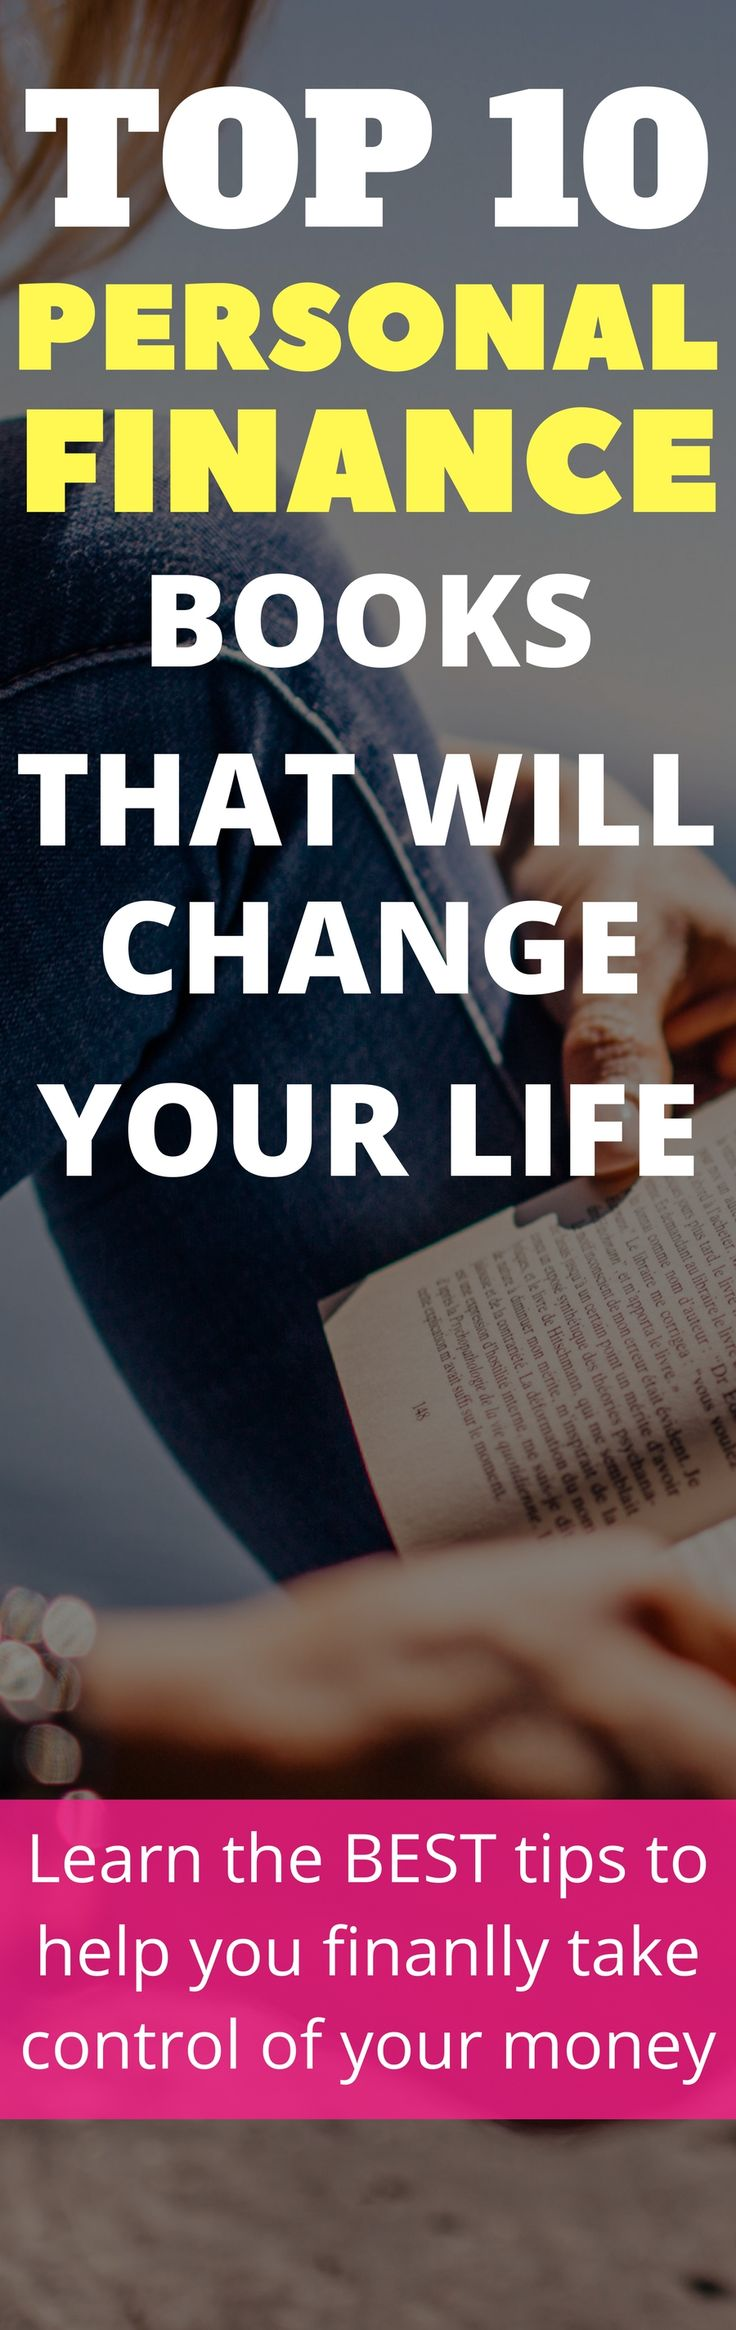 Top 10 personal financebooks that will improve your life and help you take full control over your financial situation for good! Check out this epic list of personal finance books if you want to learn REAL tips about mananing your money